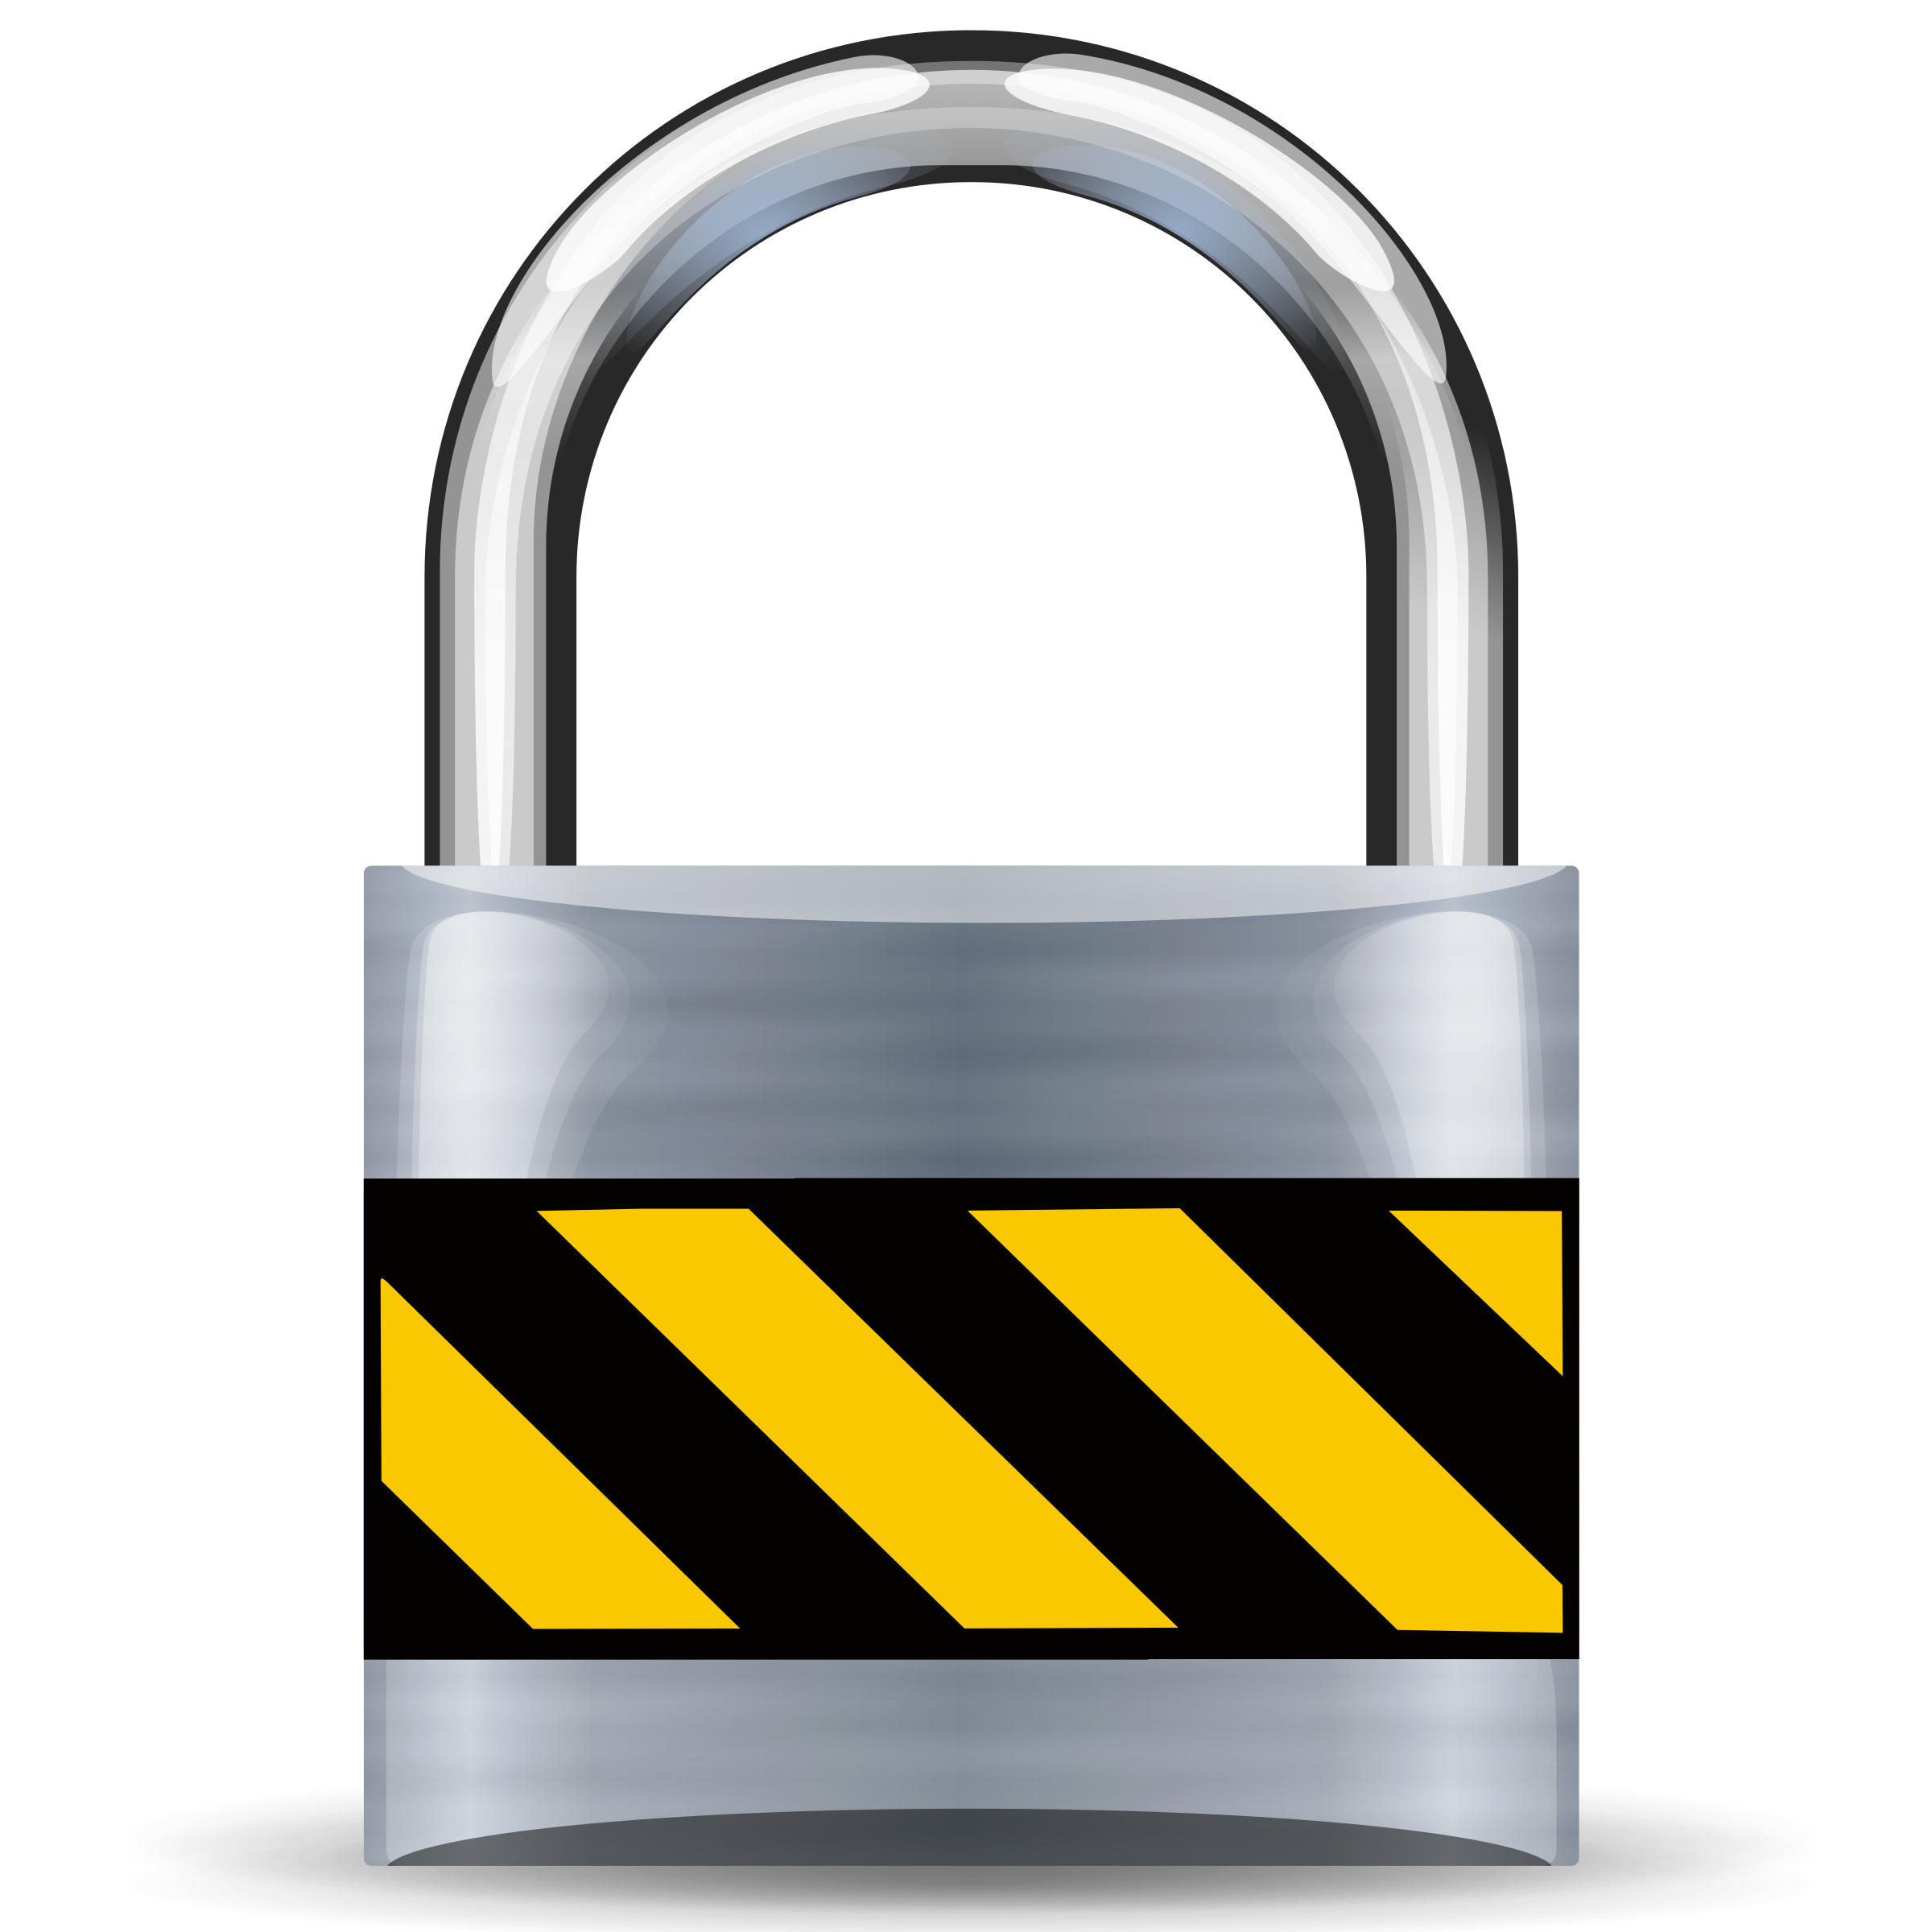 Lock security clipground. Safe clipart silver